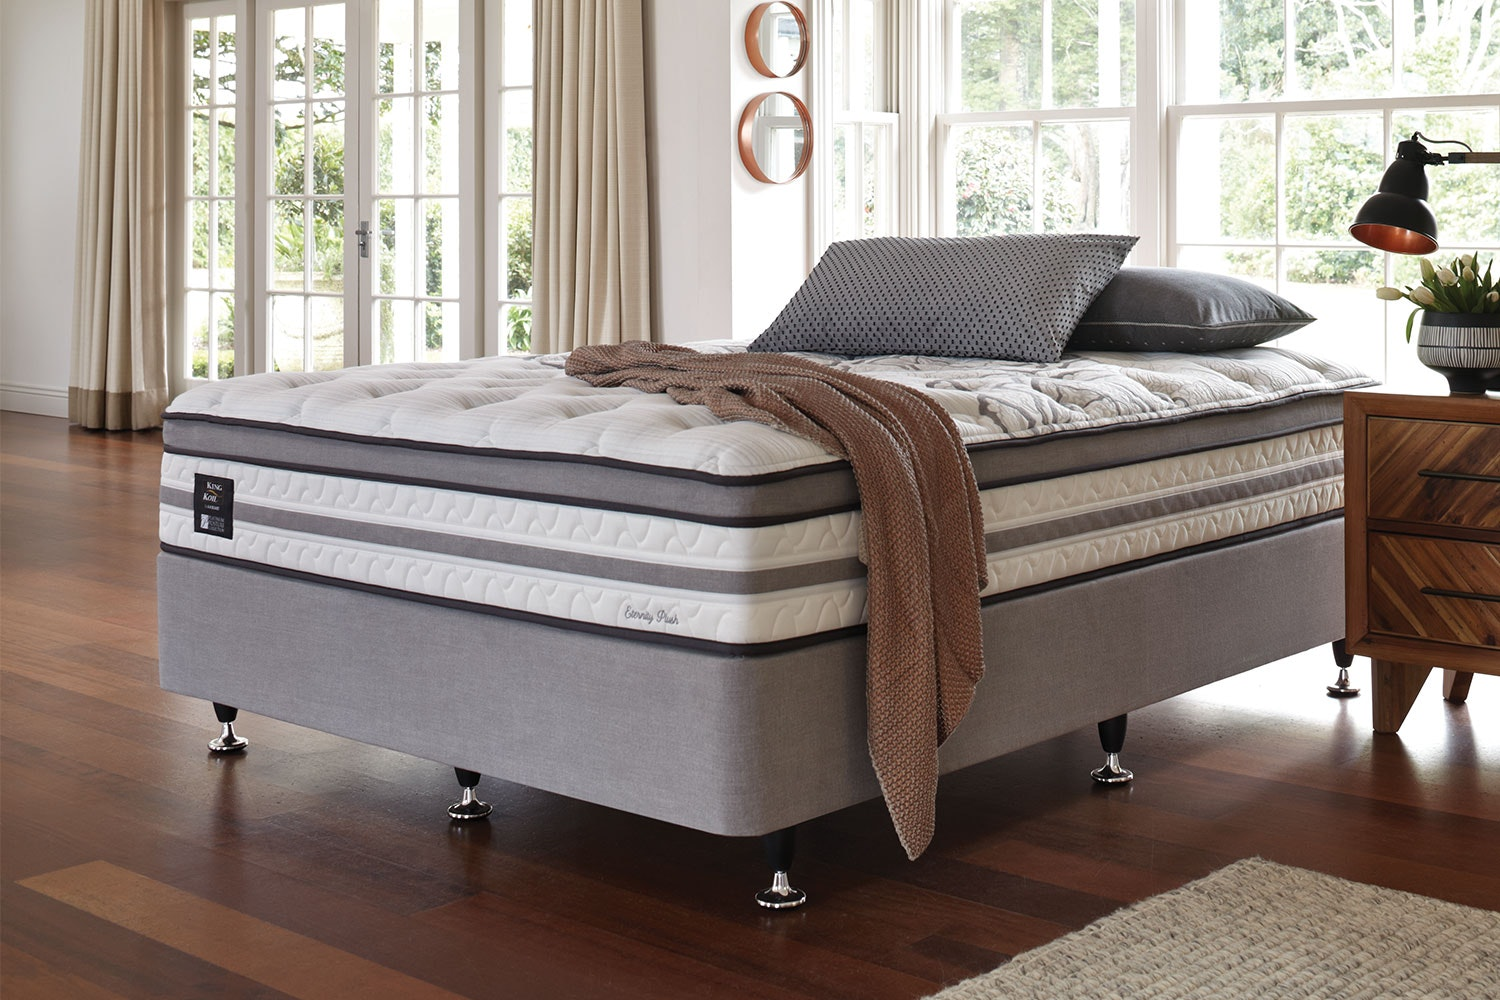 Eternity Plush Long Single Bed by King Koil